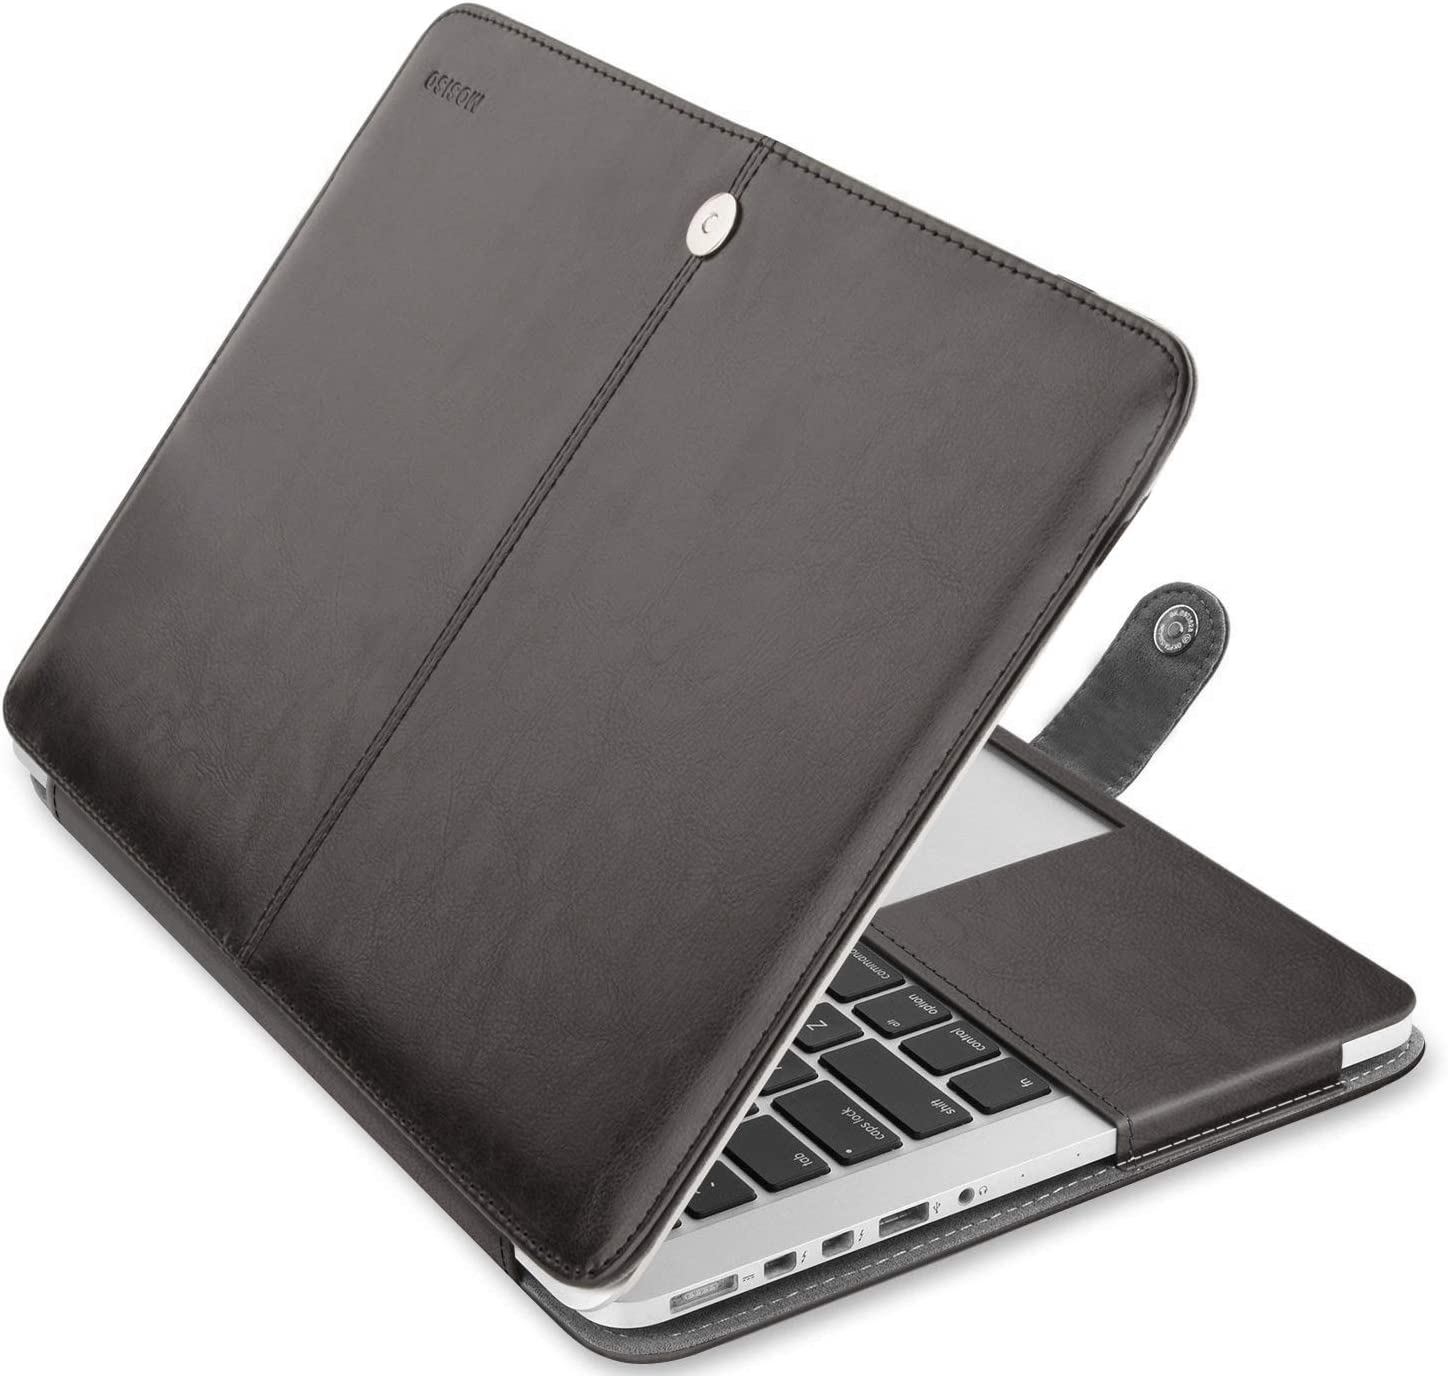 MOSISO MacBook Pro 13 inch Case, Premium PU Leather Book Folio Protective Stand Cover Sleeve Compatible with MacBook Pro 13 inch Retina (A1502/A1425, Version 2015/2014/2013/end 2012), Black